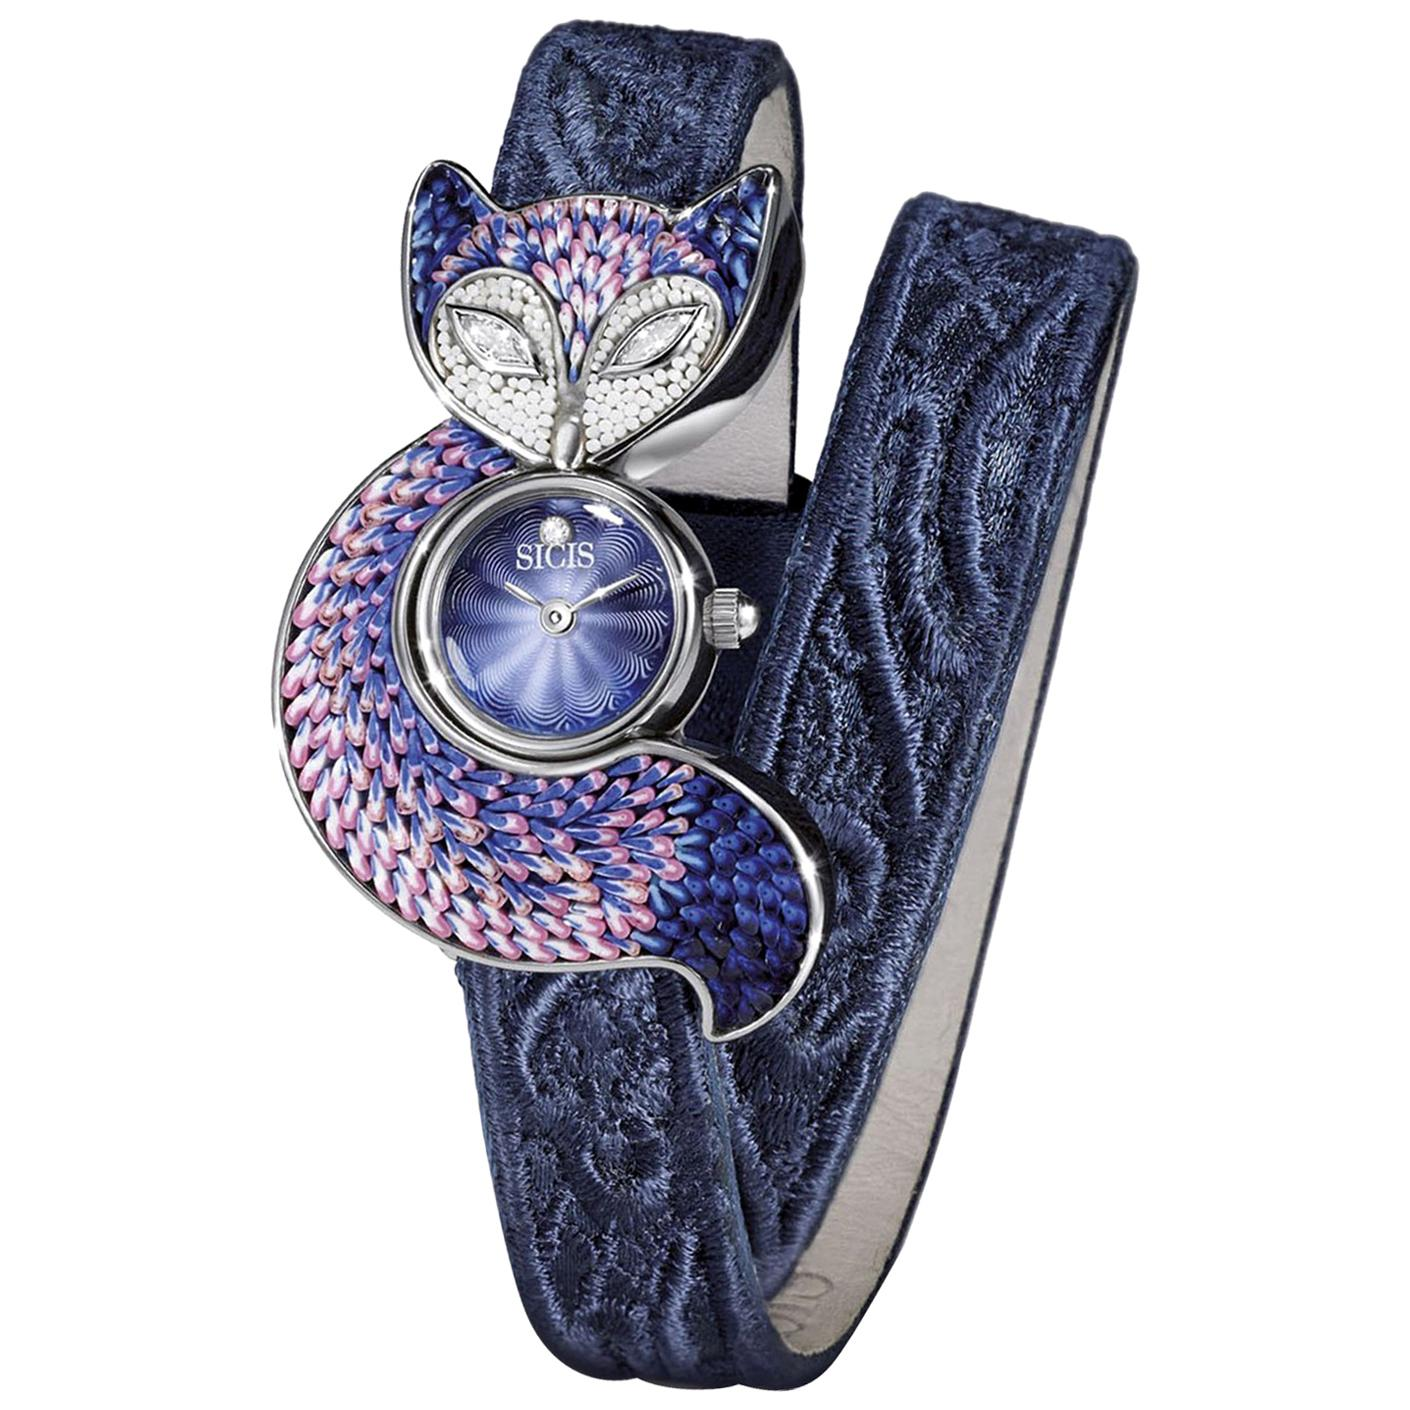 Wristwatch Silver Stainless Steel White Diamonds Guilloche Dial Micromosaic